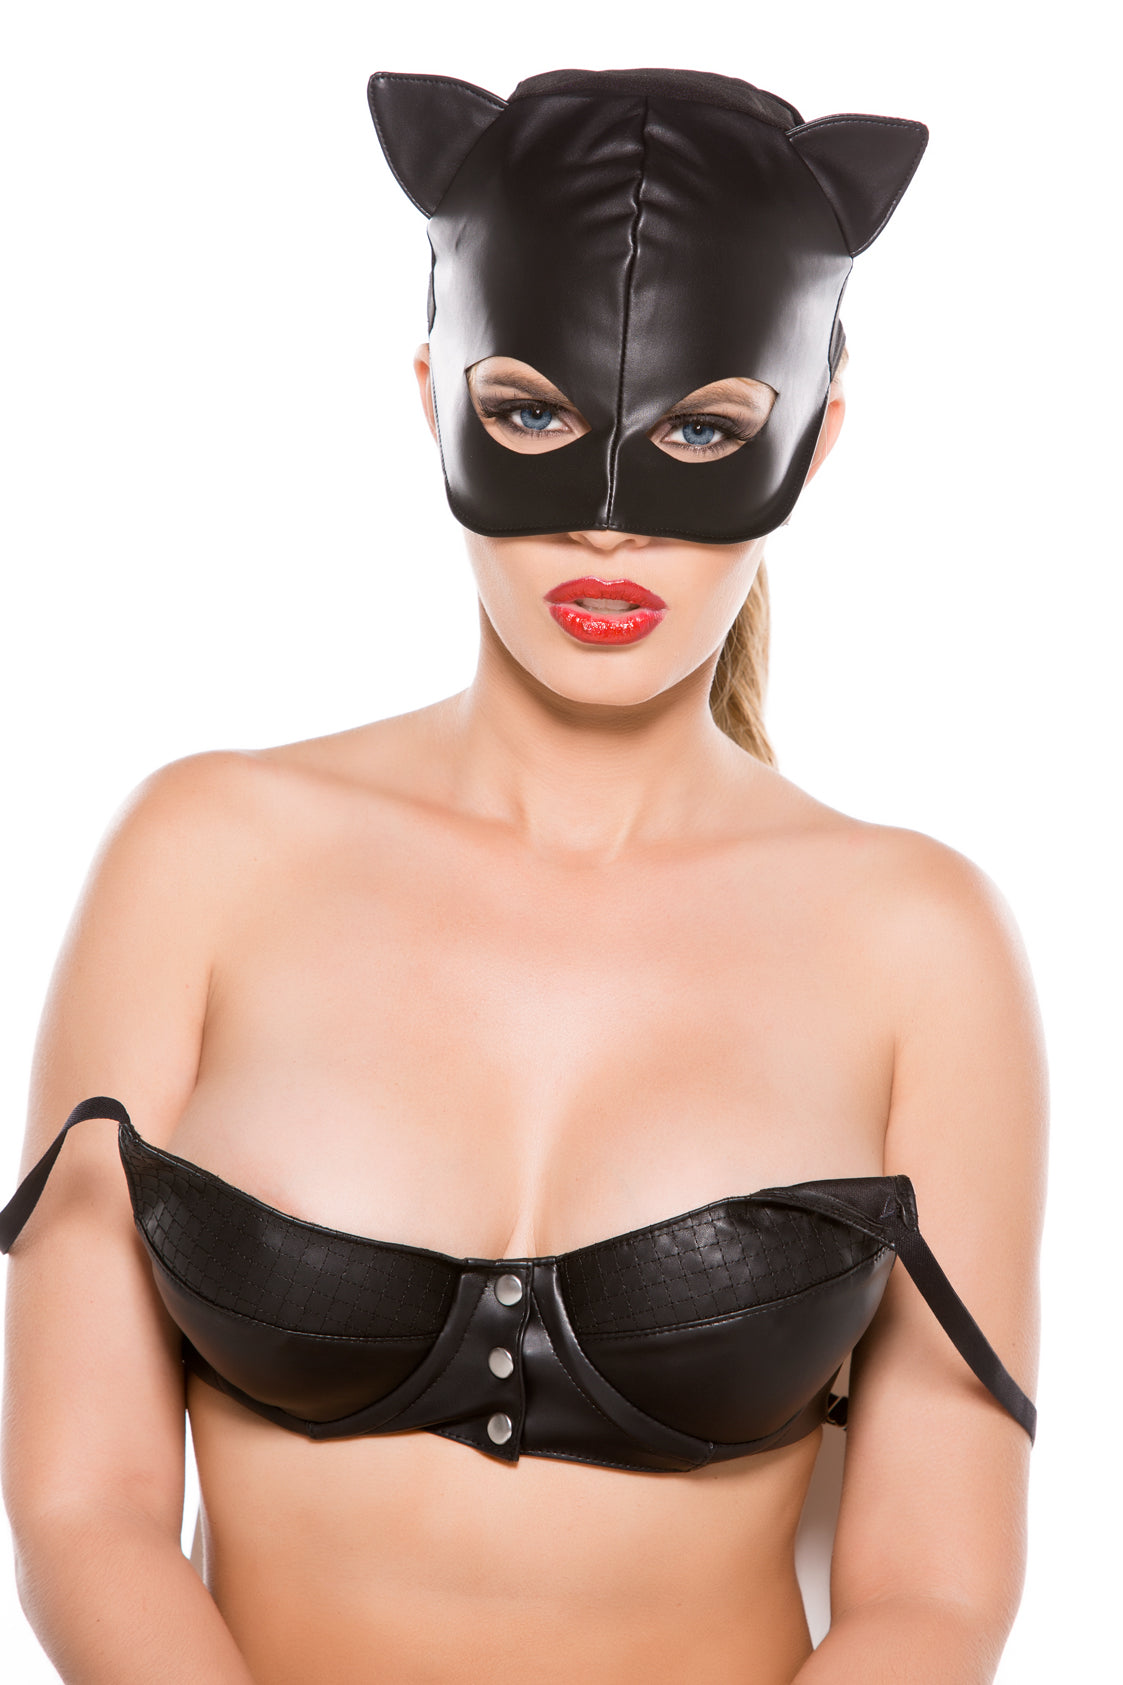 Allure Black Faux Leather Cat Mask O-s